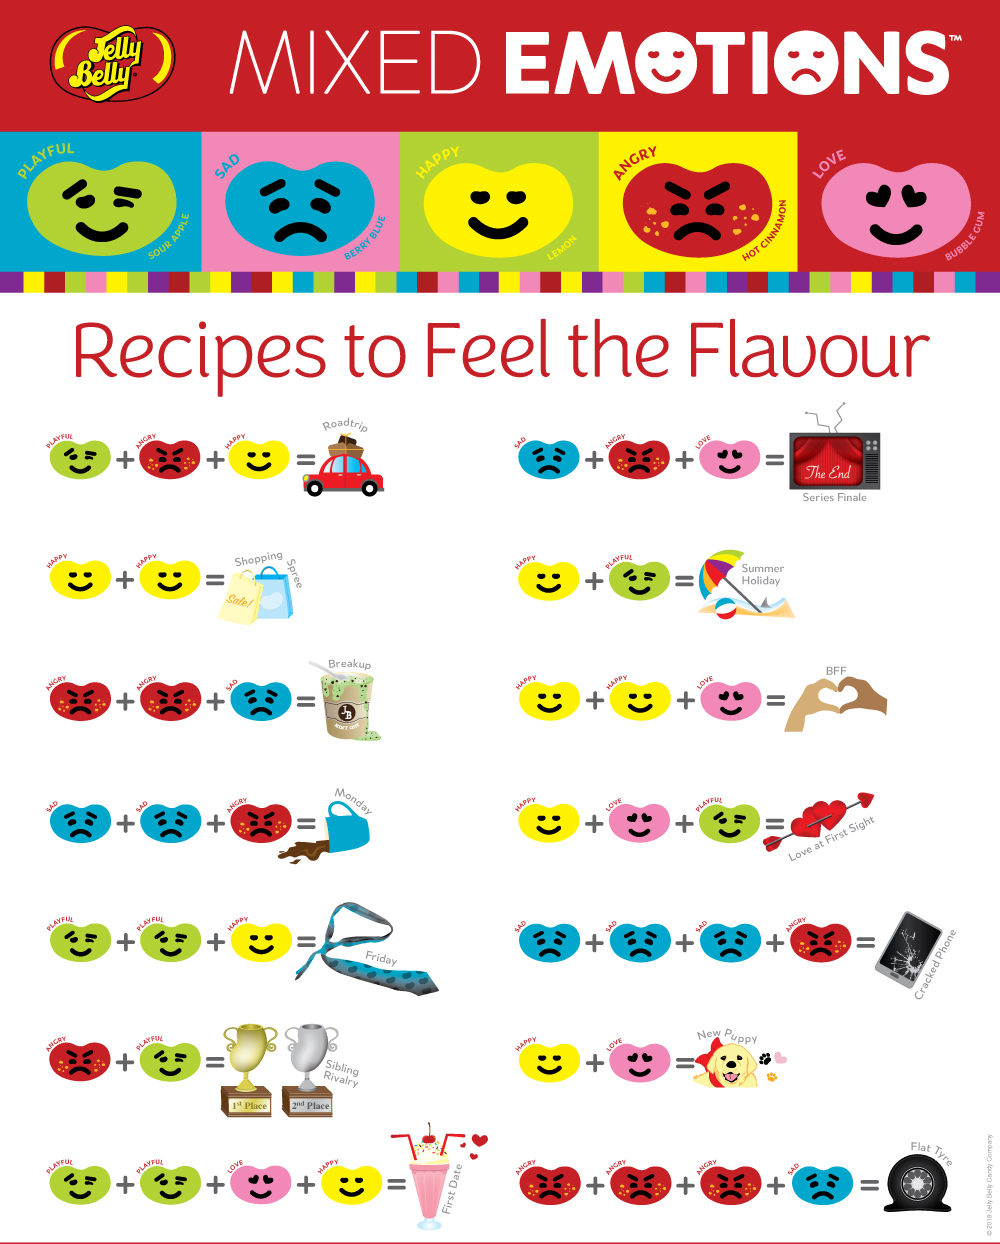 Mixed Emotions Recipes